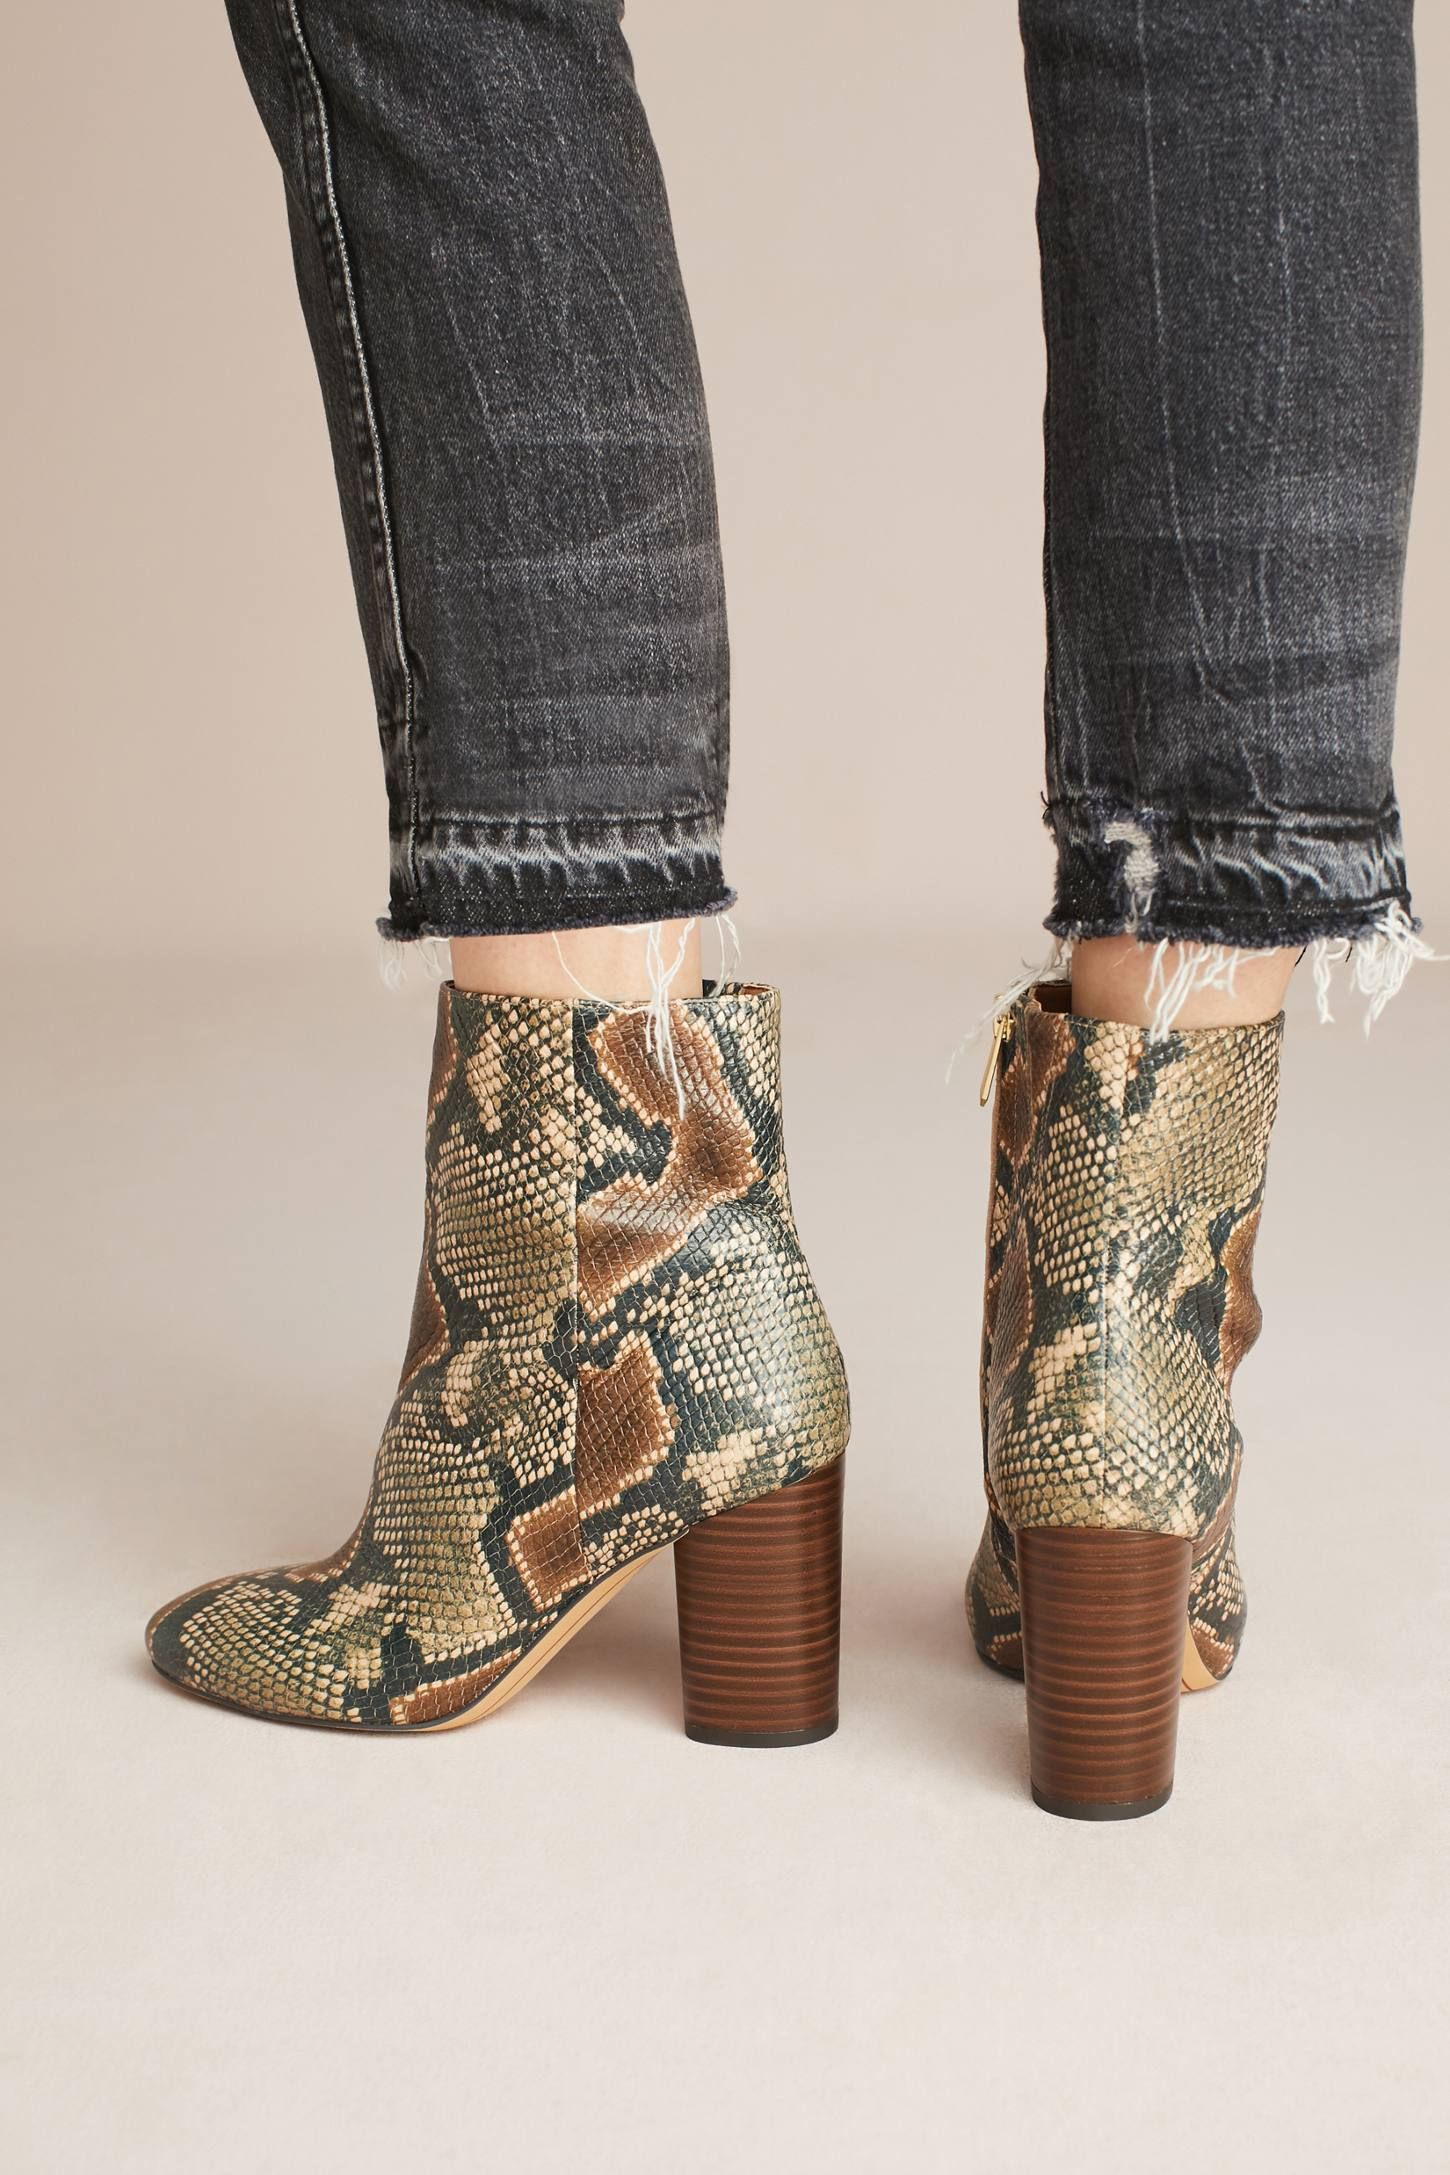 e773a0253 Slide View  4  Sam Edelman Corra Snake Ankle Boots